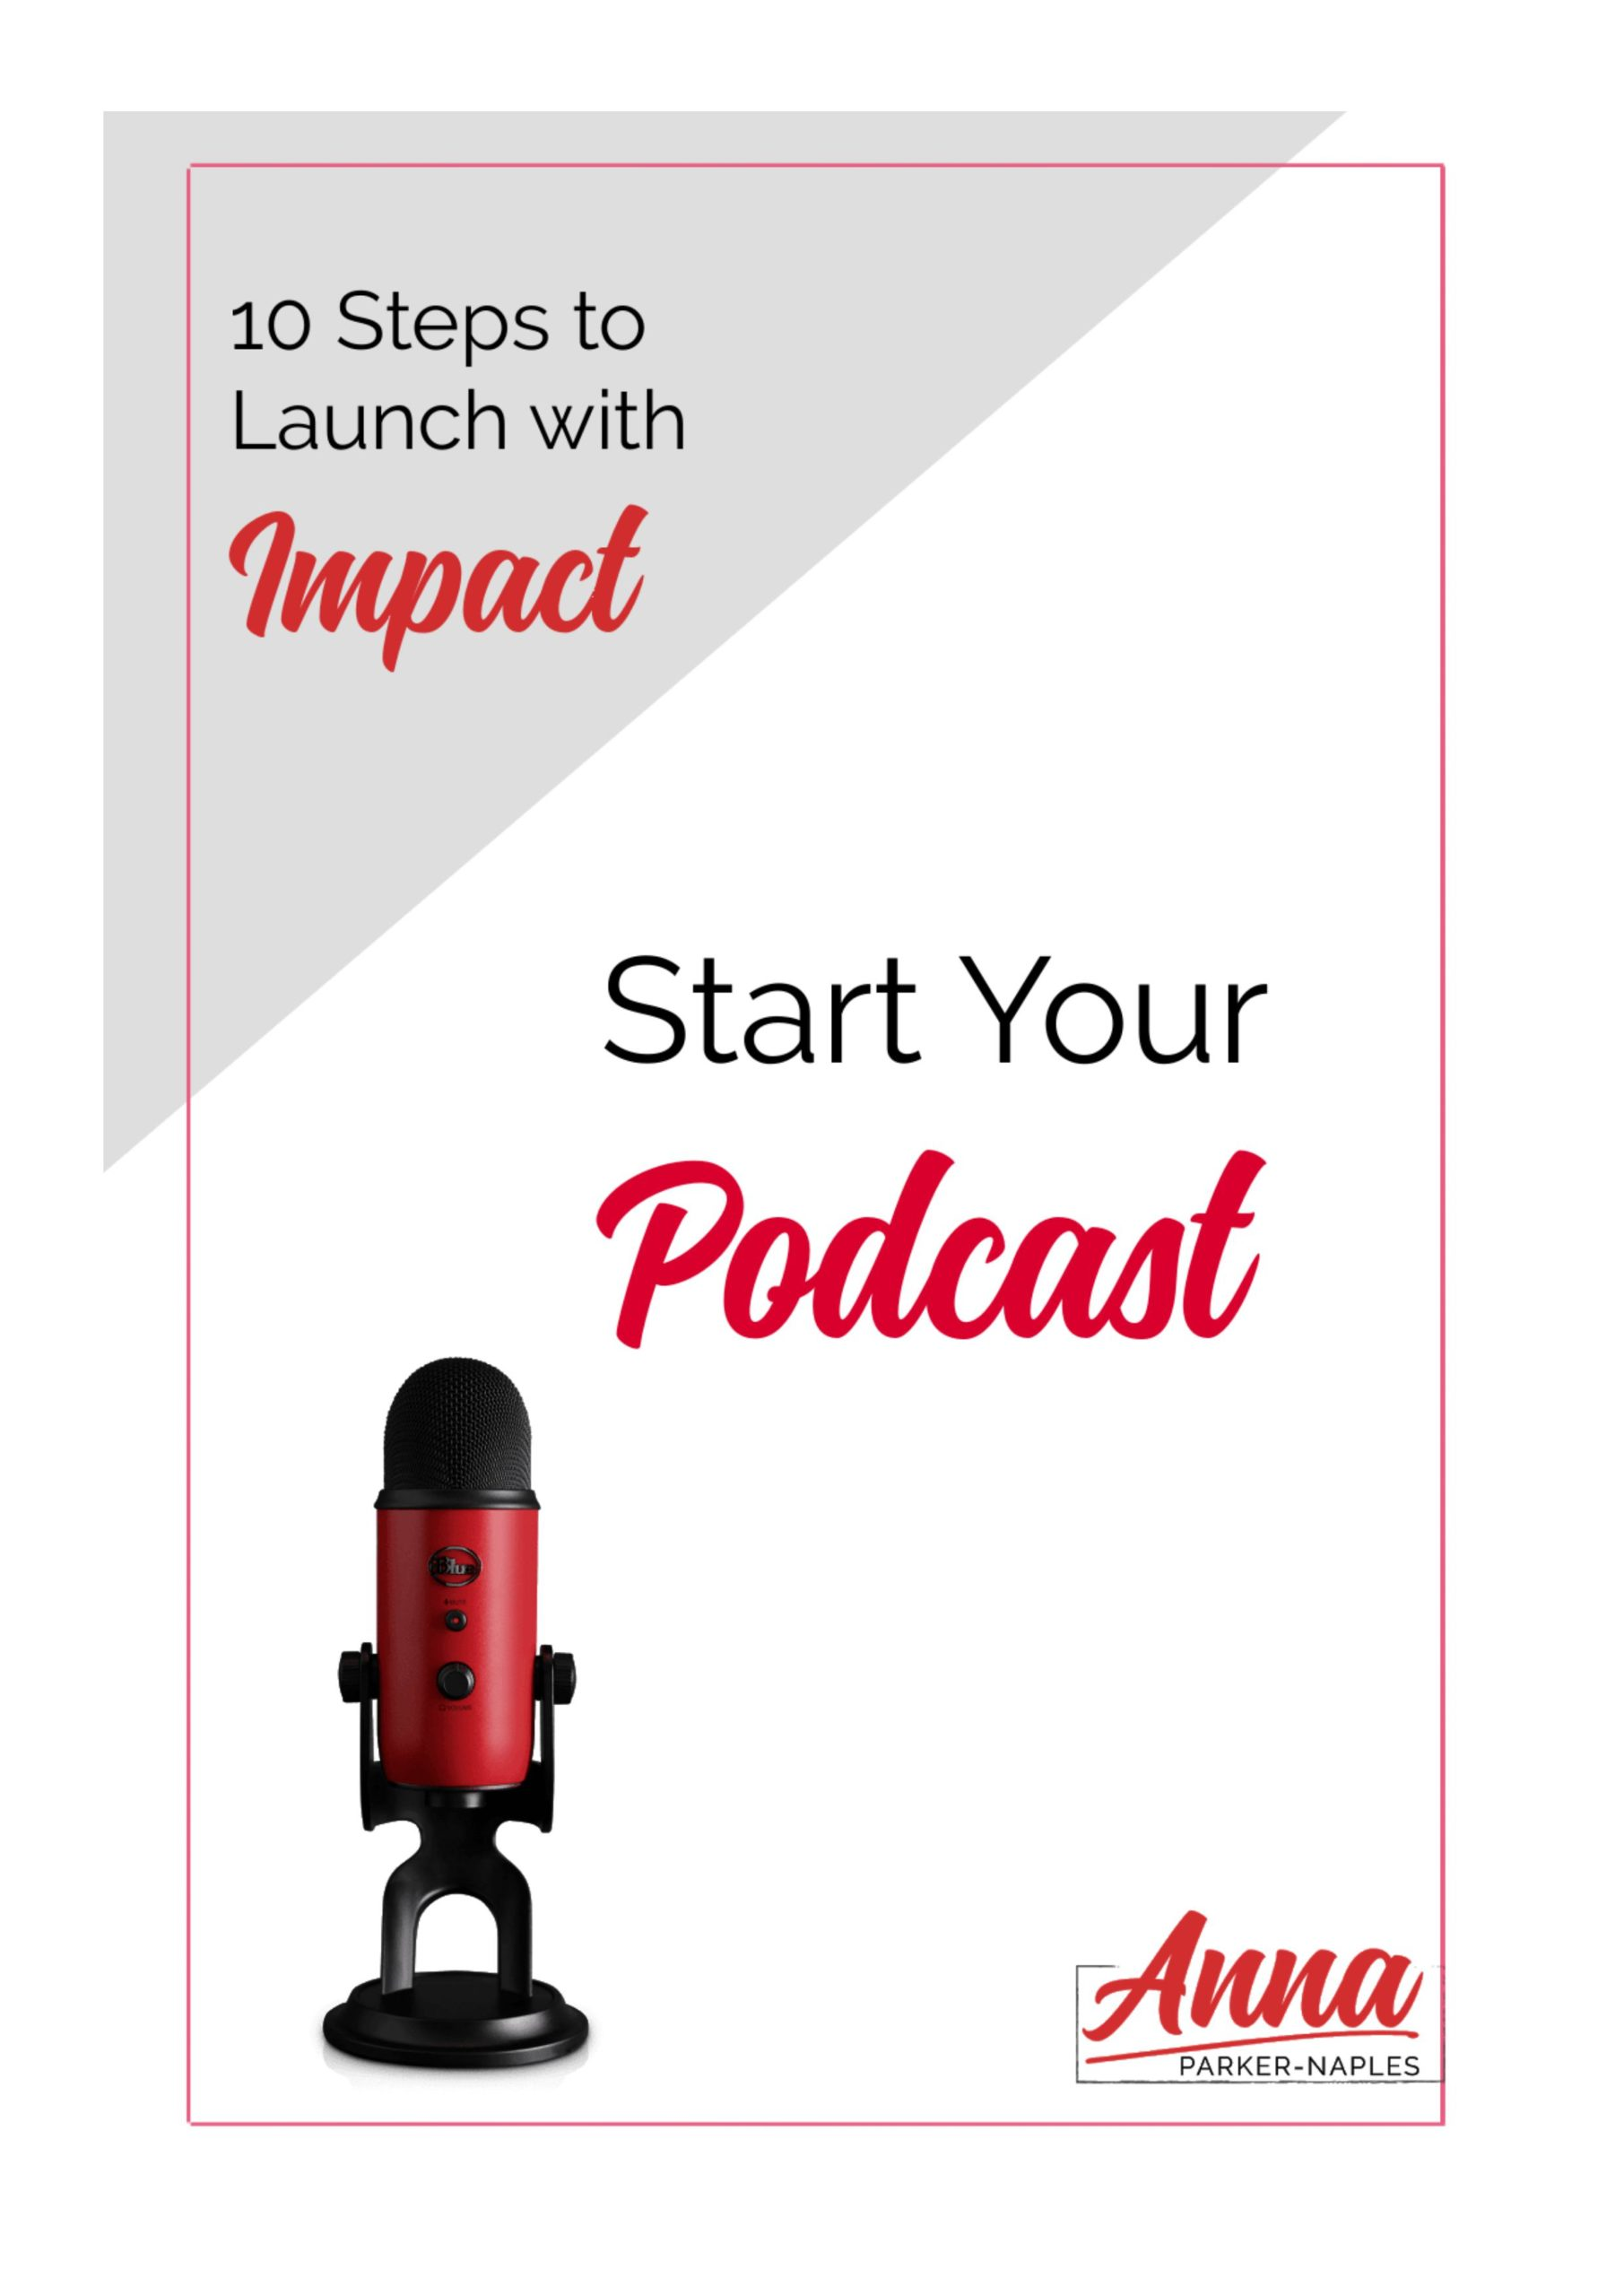 10 Steps to Launch Your Podcast with Impact